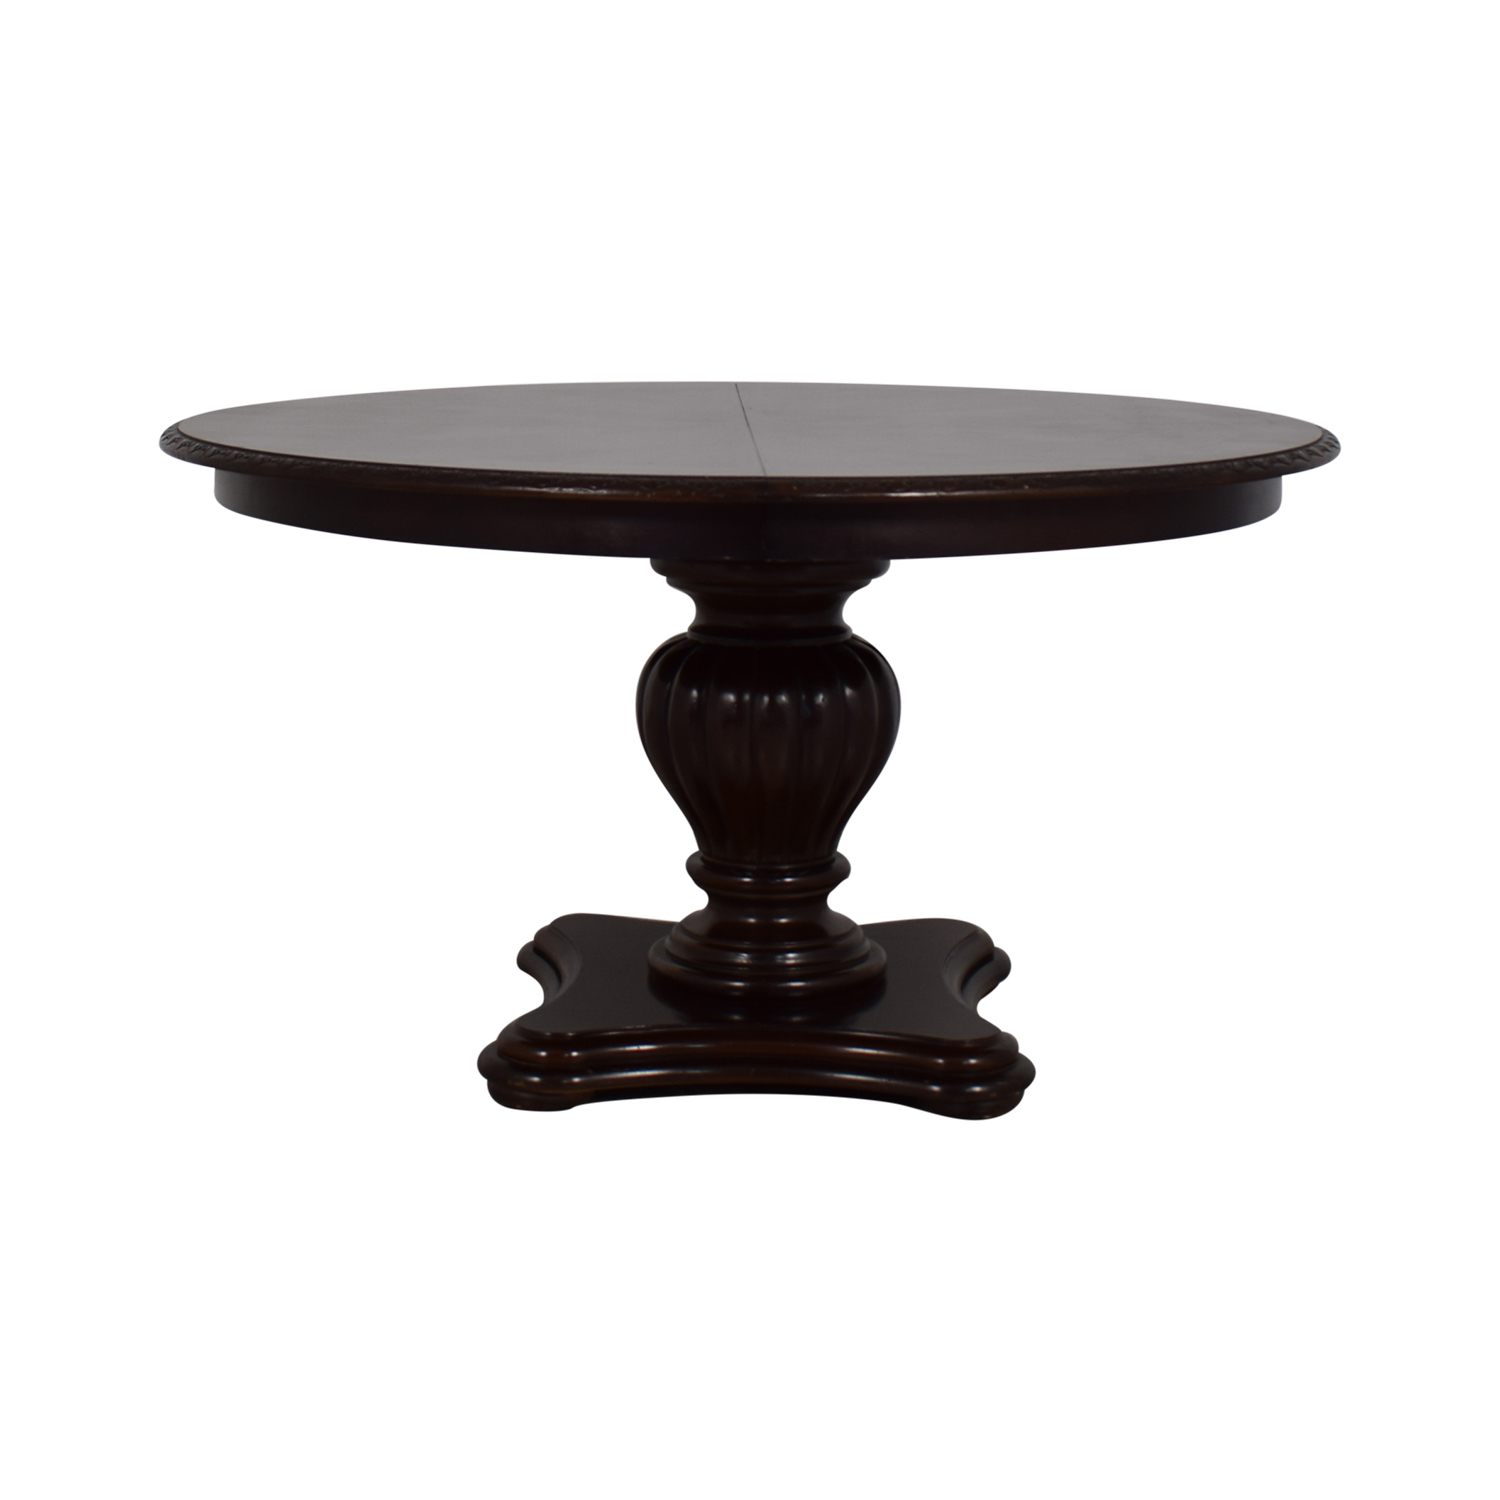 Bernhardt Bernhardt Extendable Pedestal Dining Table on sale